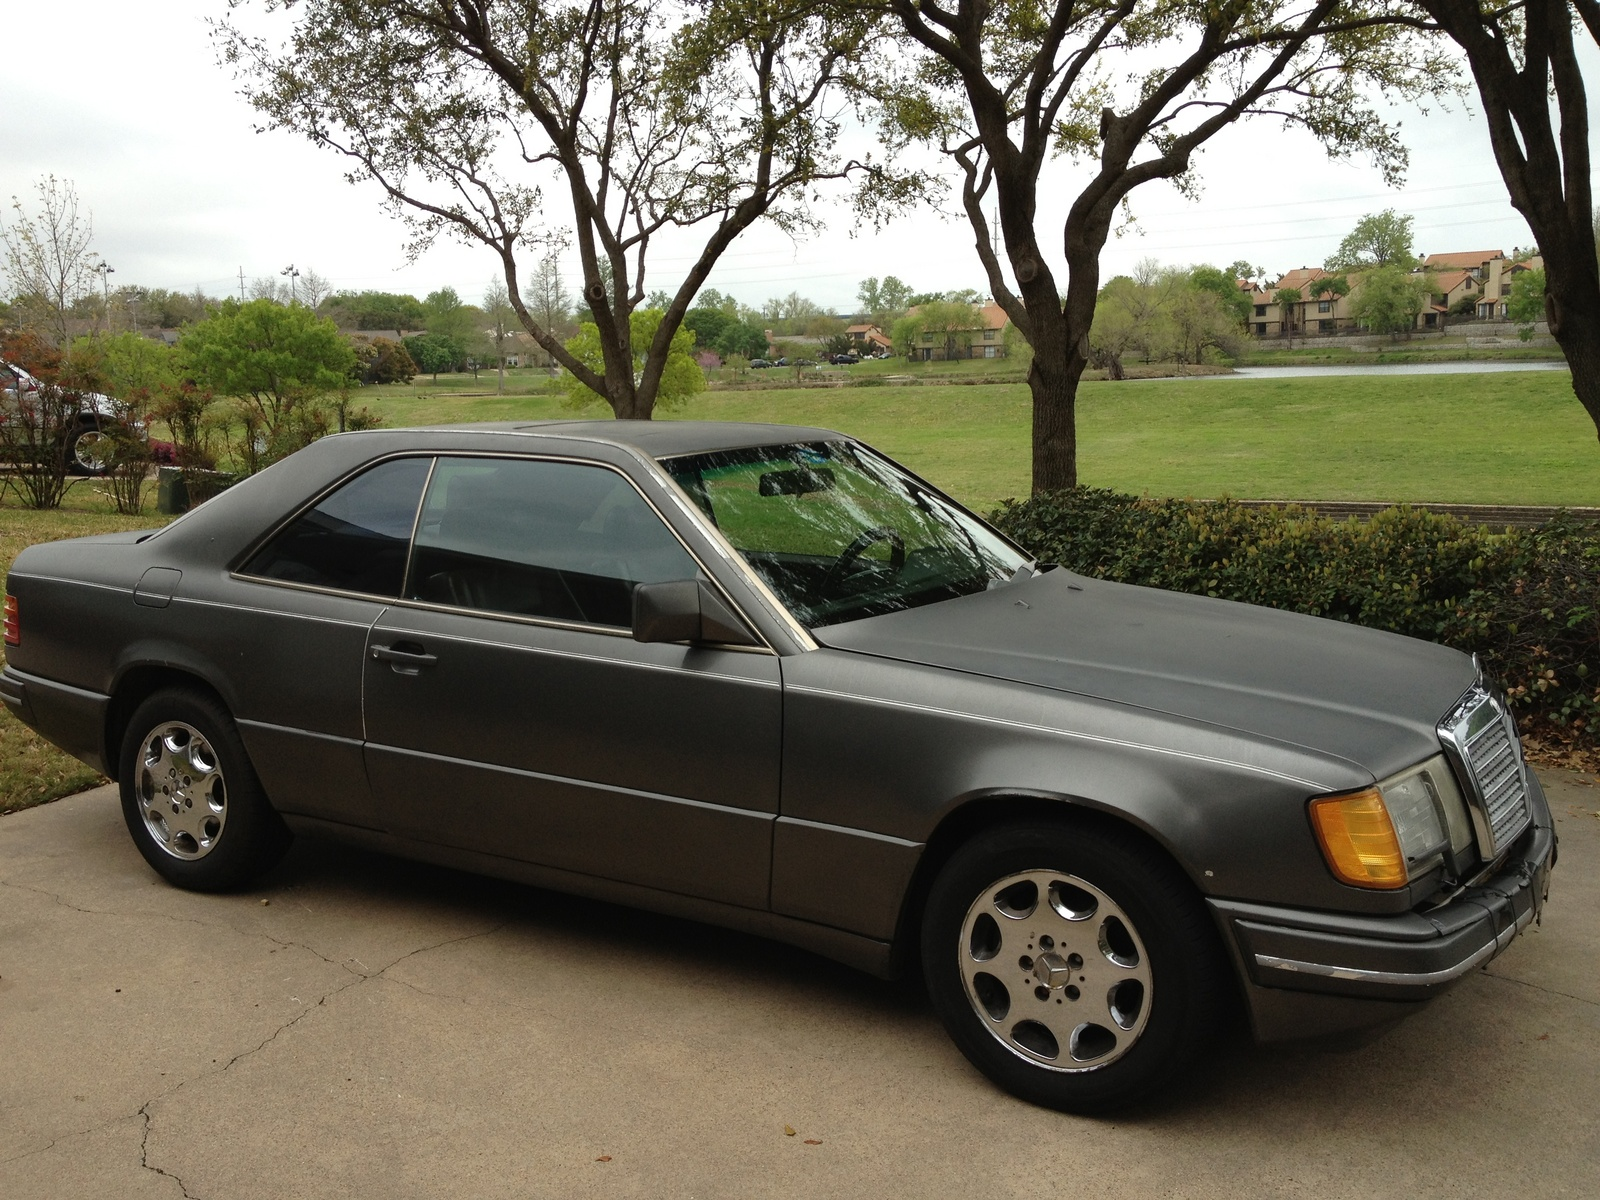 1989 mercedes benz 280 overview cargurus for Mercedes benz of marion